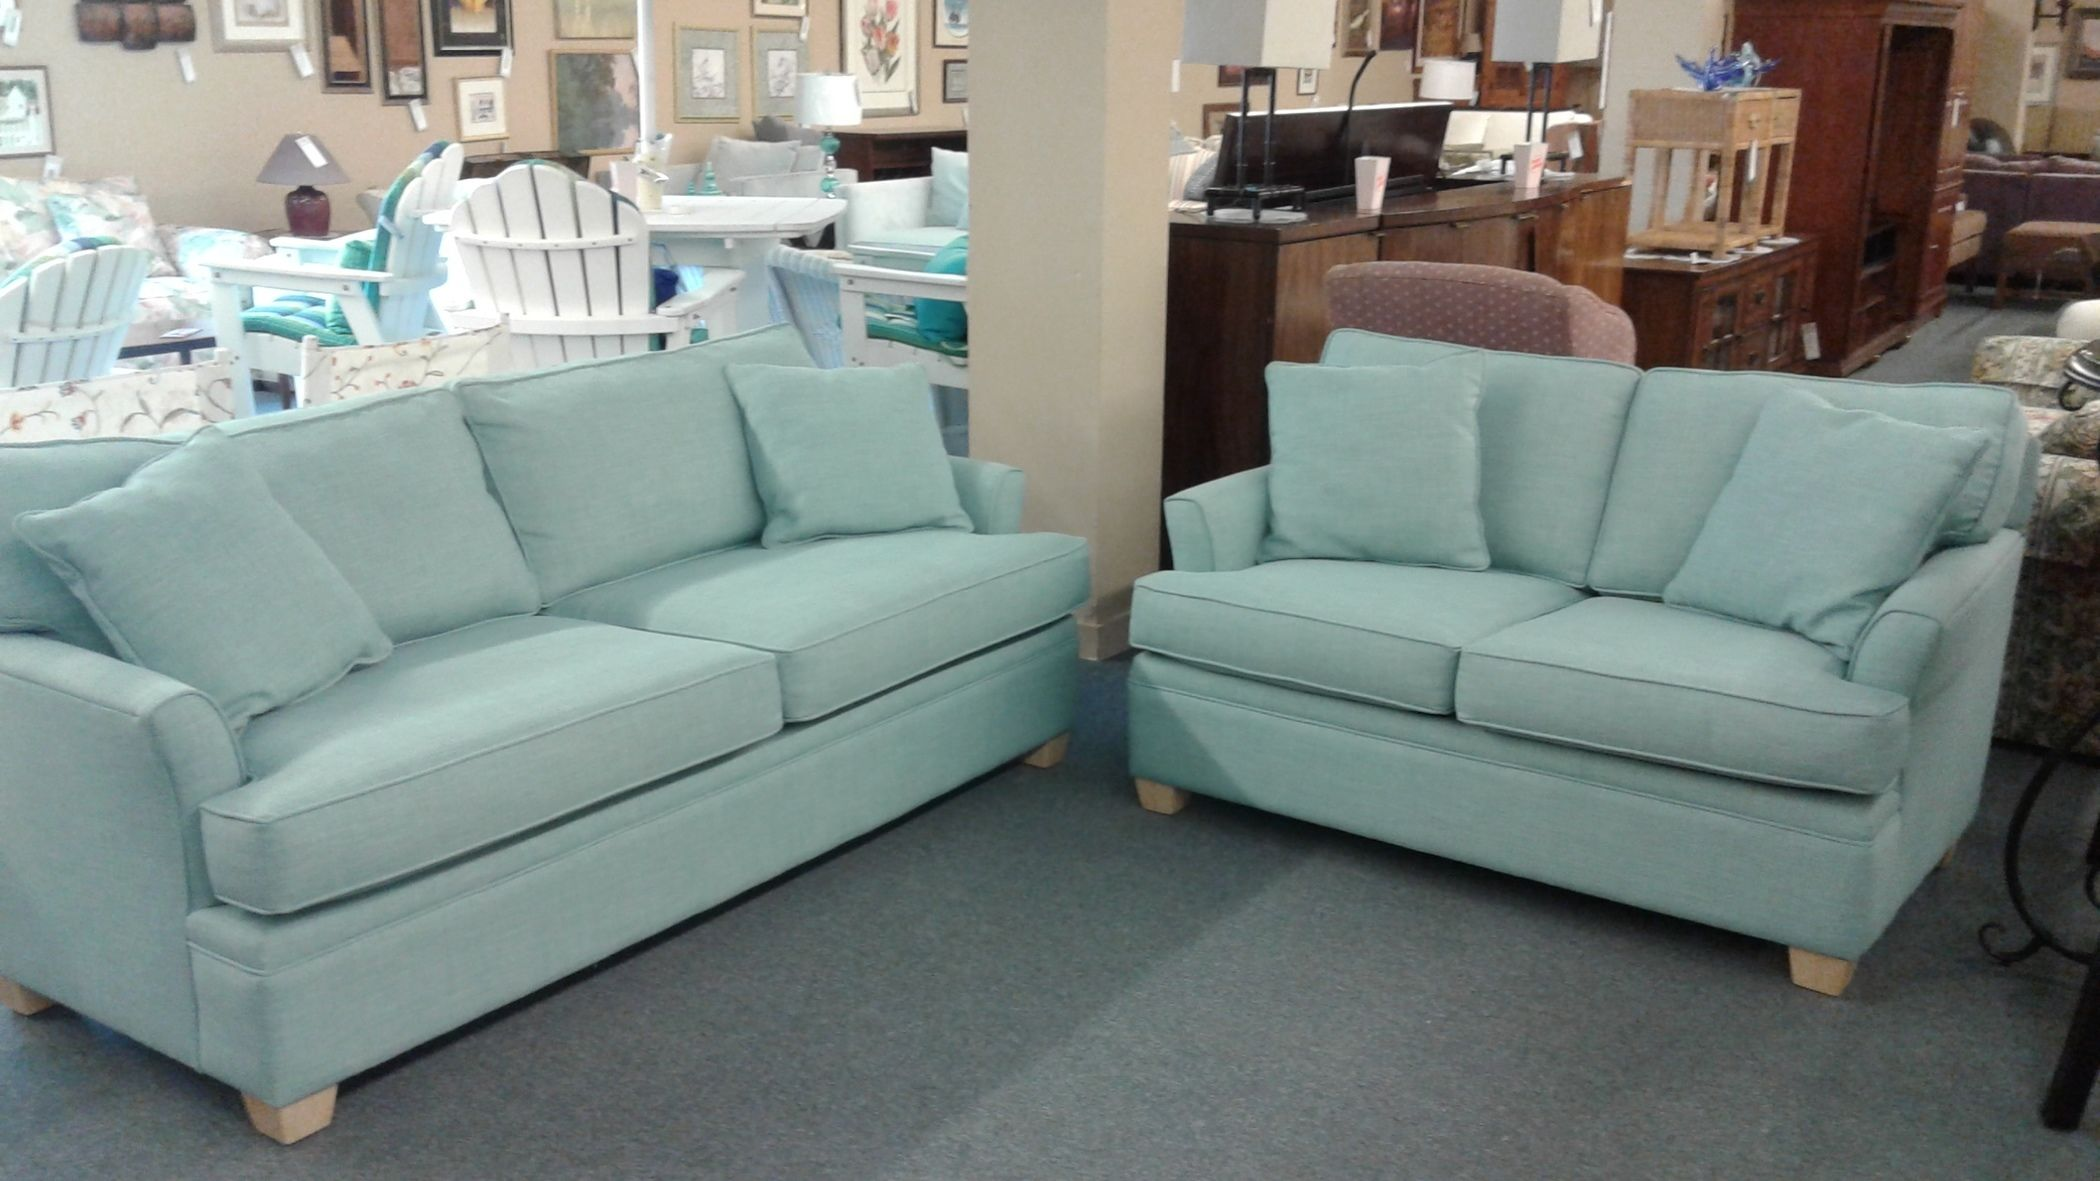 BRAXTON CULLER SOFA LOVESEAT Delmarva Furniture Consignment